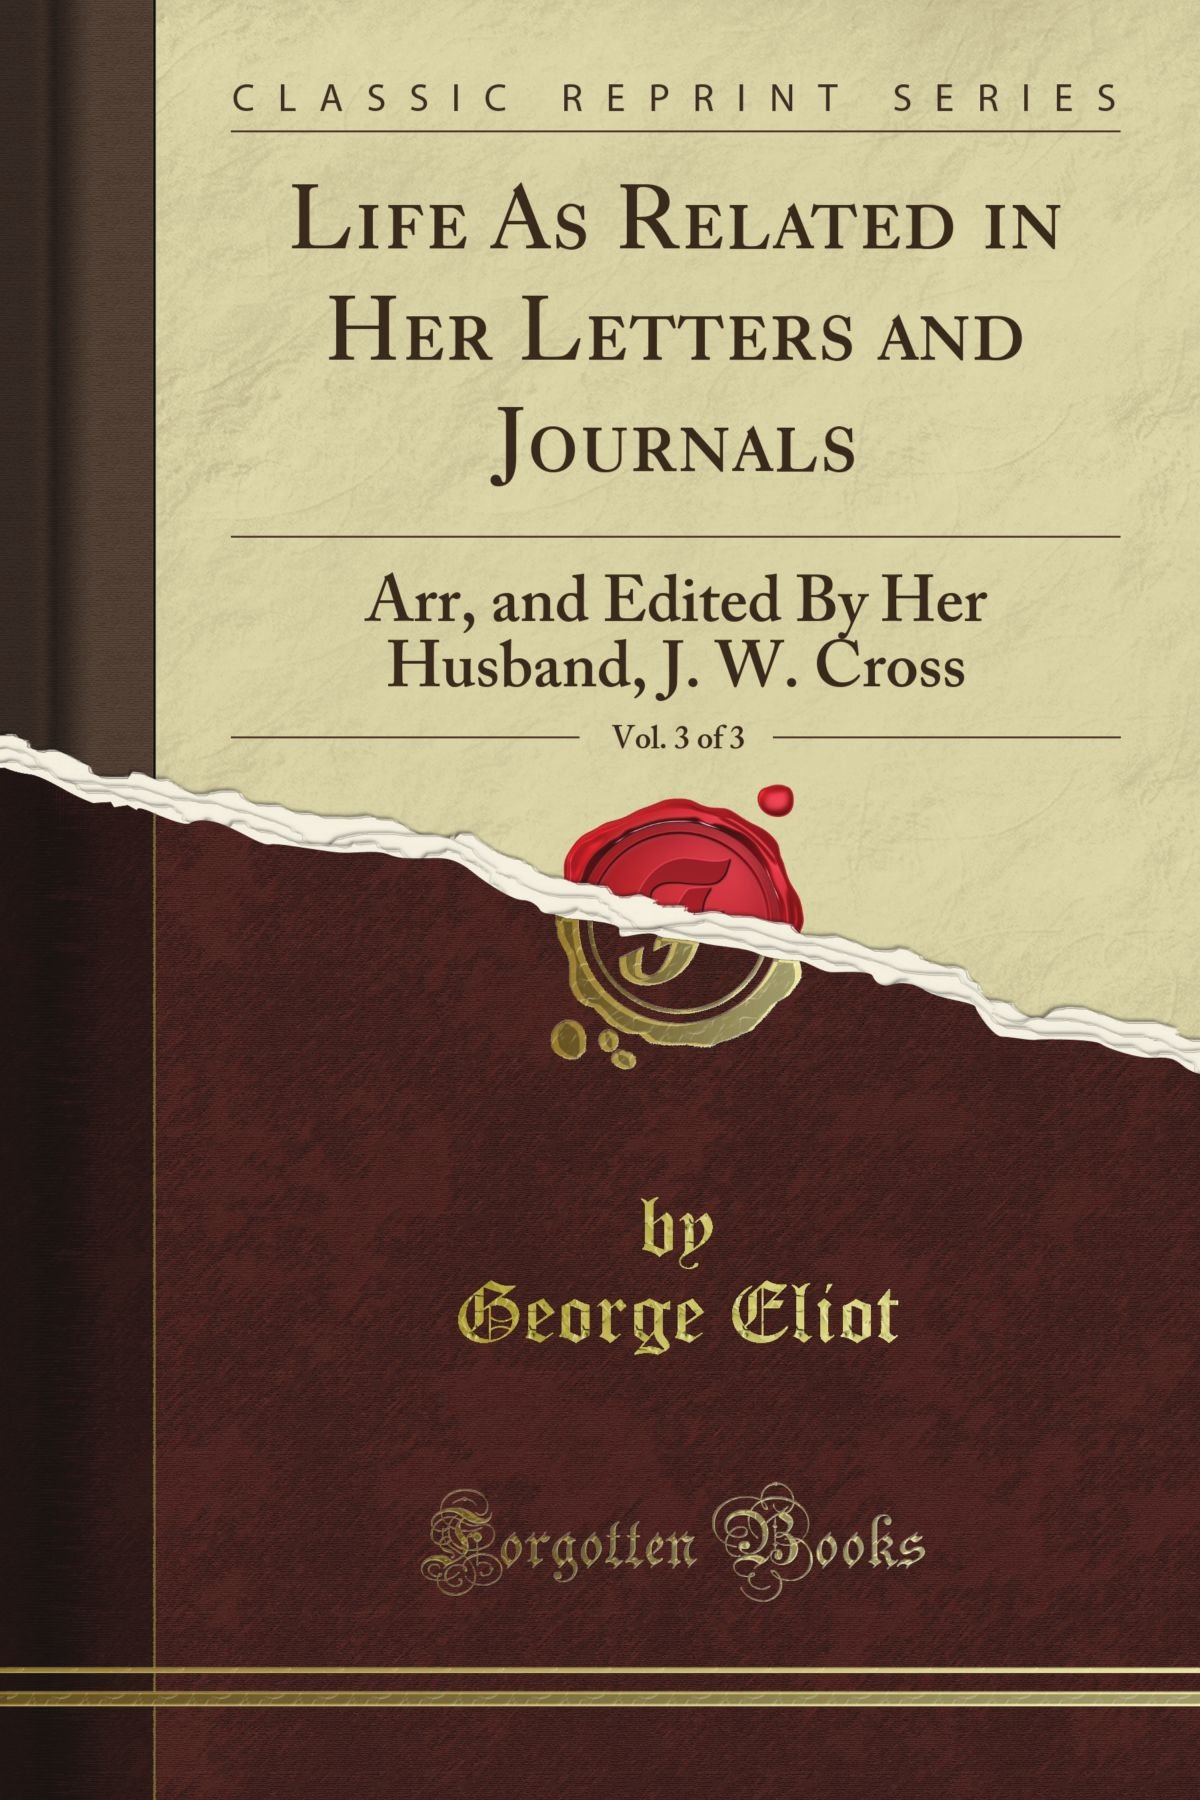 Read Online Life As Related in Her Letters and Journals: Arr, and Edited By Her Husband, J. W. Cross, Vol. 3 of 3 (Classic Reprint) PDF